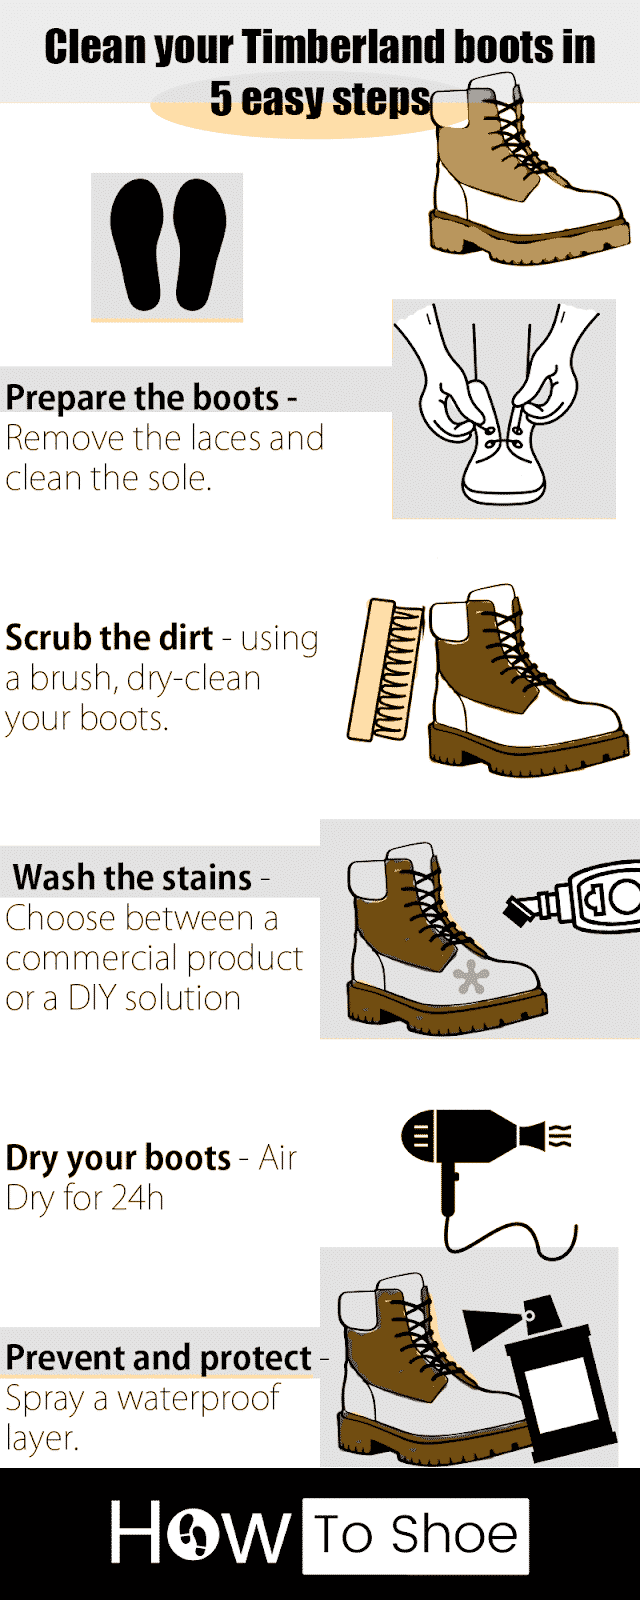 Clean your Timberland Boots